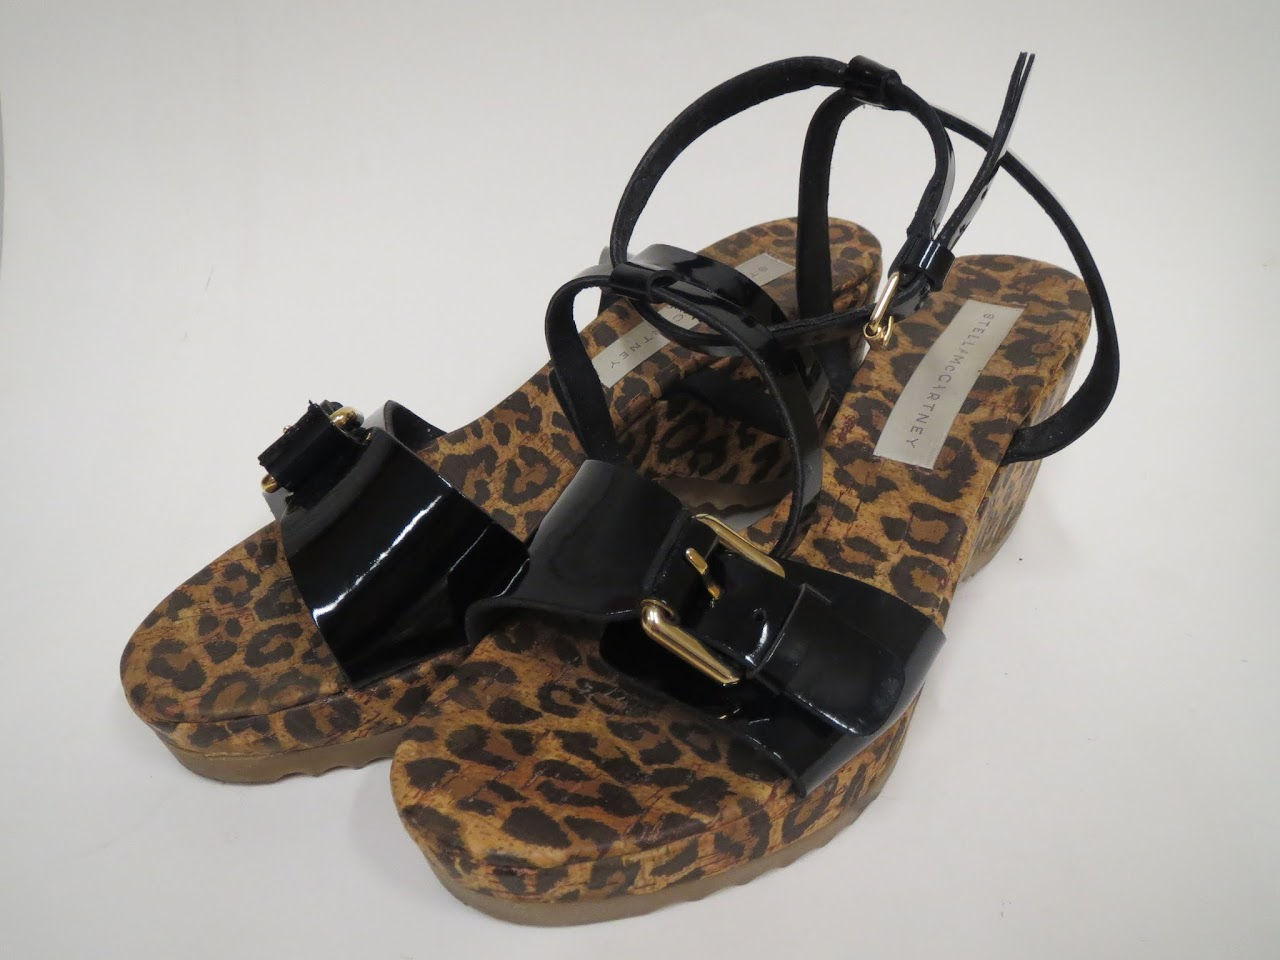 Stella McCartney Leopard Print Sandals